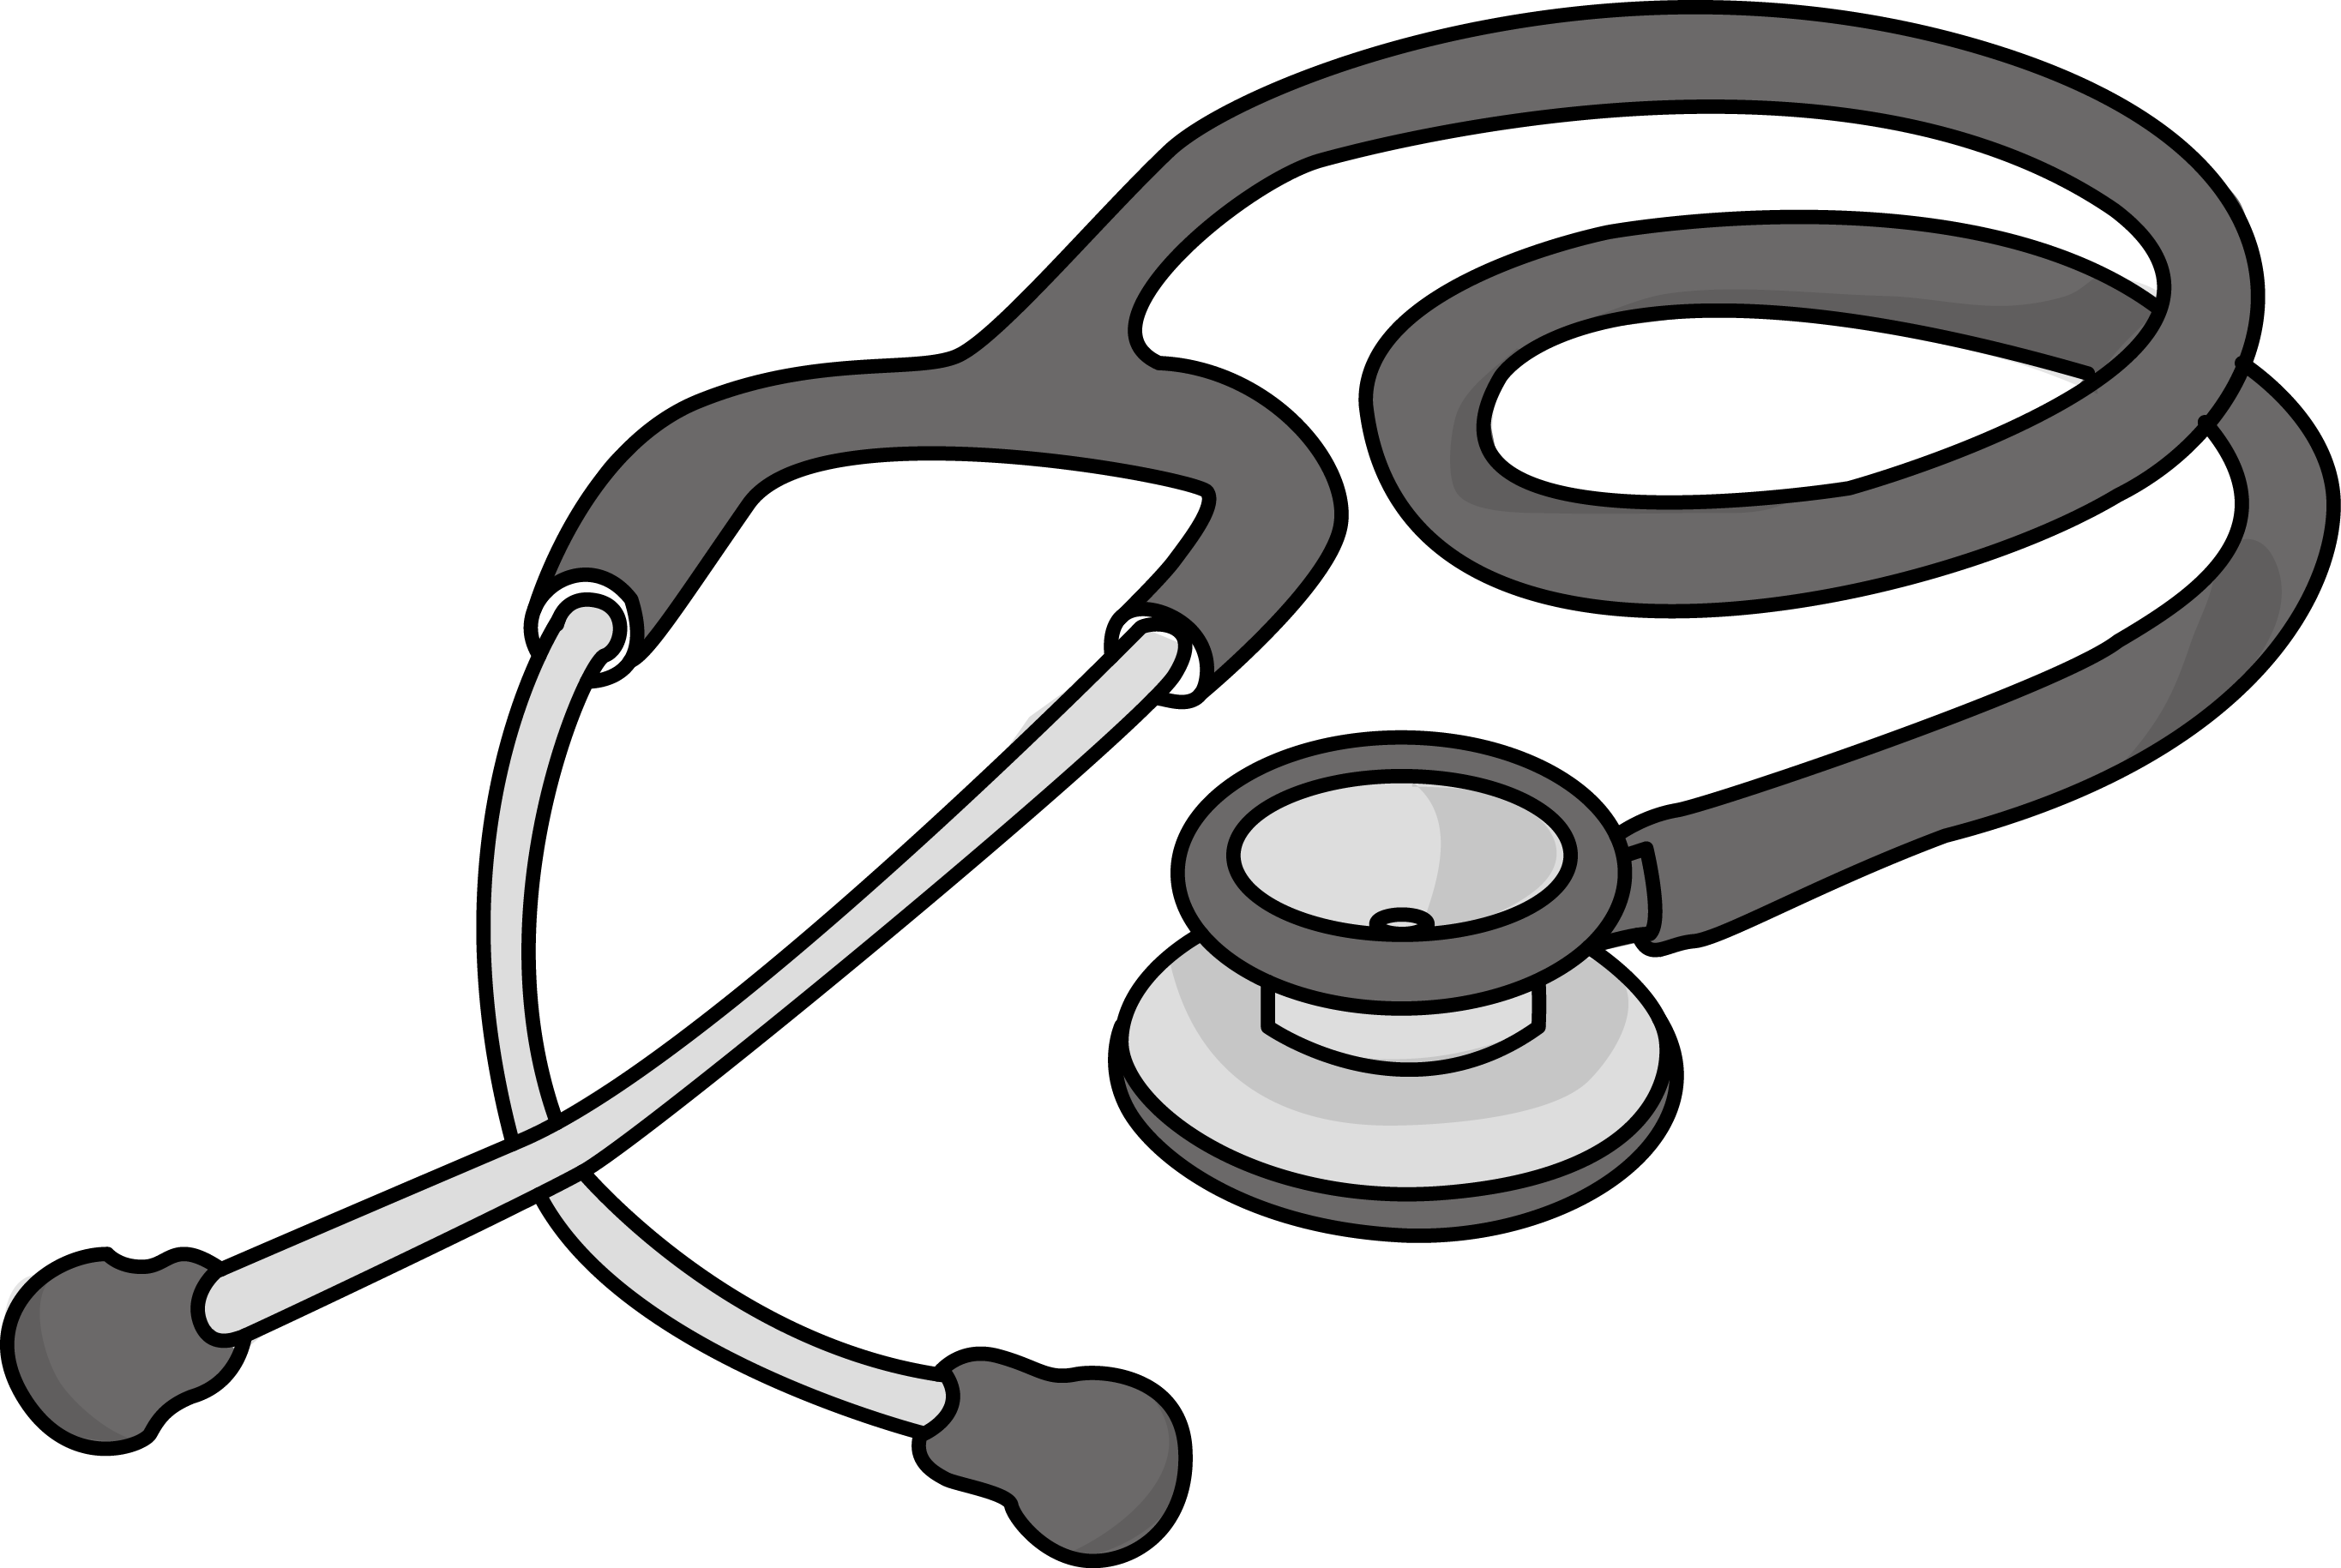 Stethoscope pictures free clipart clip art freeuse library Stethoscope Heart Clipart | Free download best Stethoscope ... clip art freeuse library